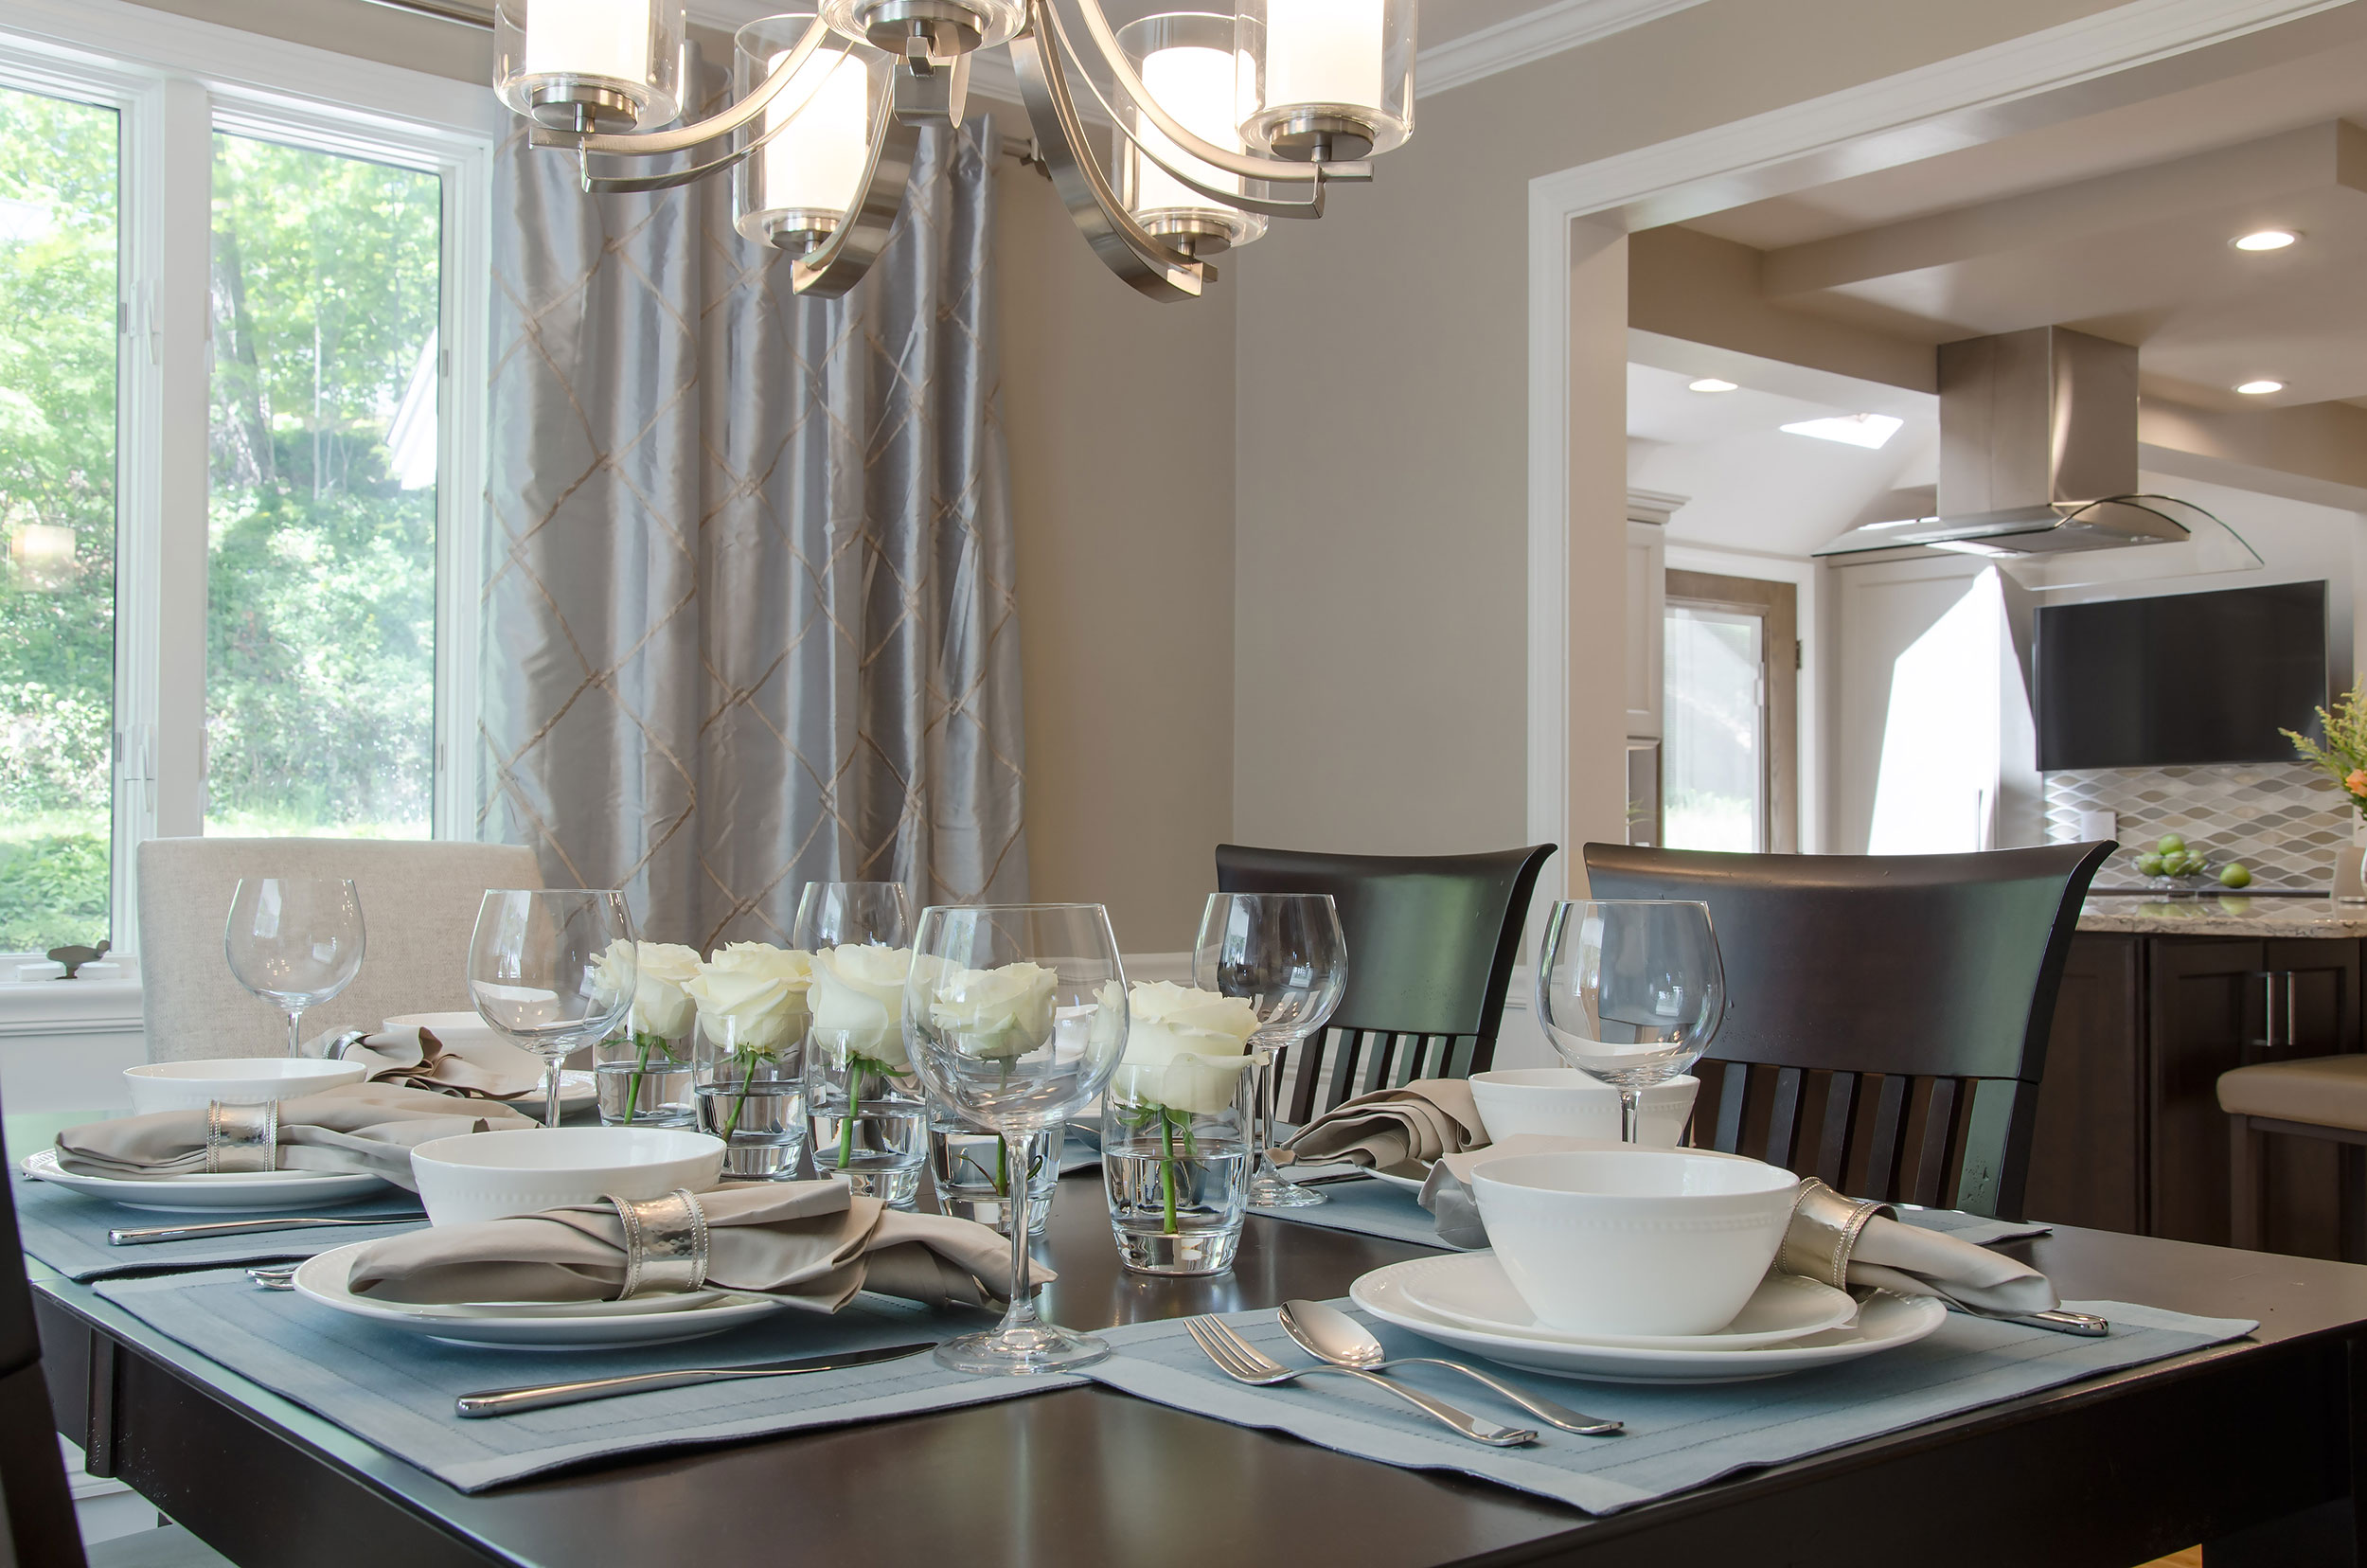 Braintree, MA dining room revitalization by Susan Curtis Interiors